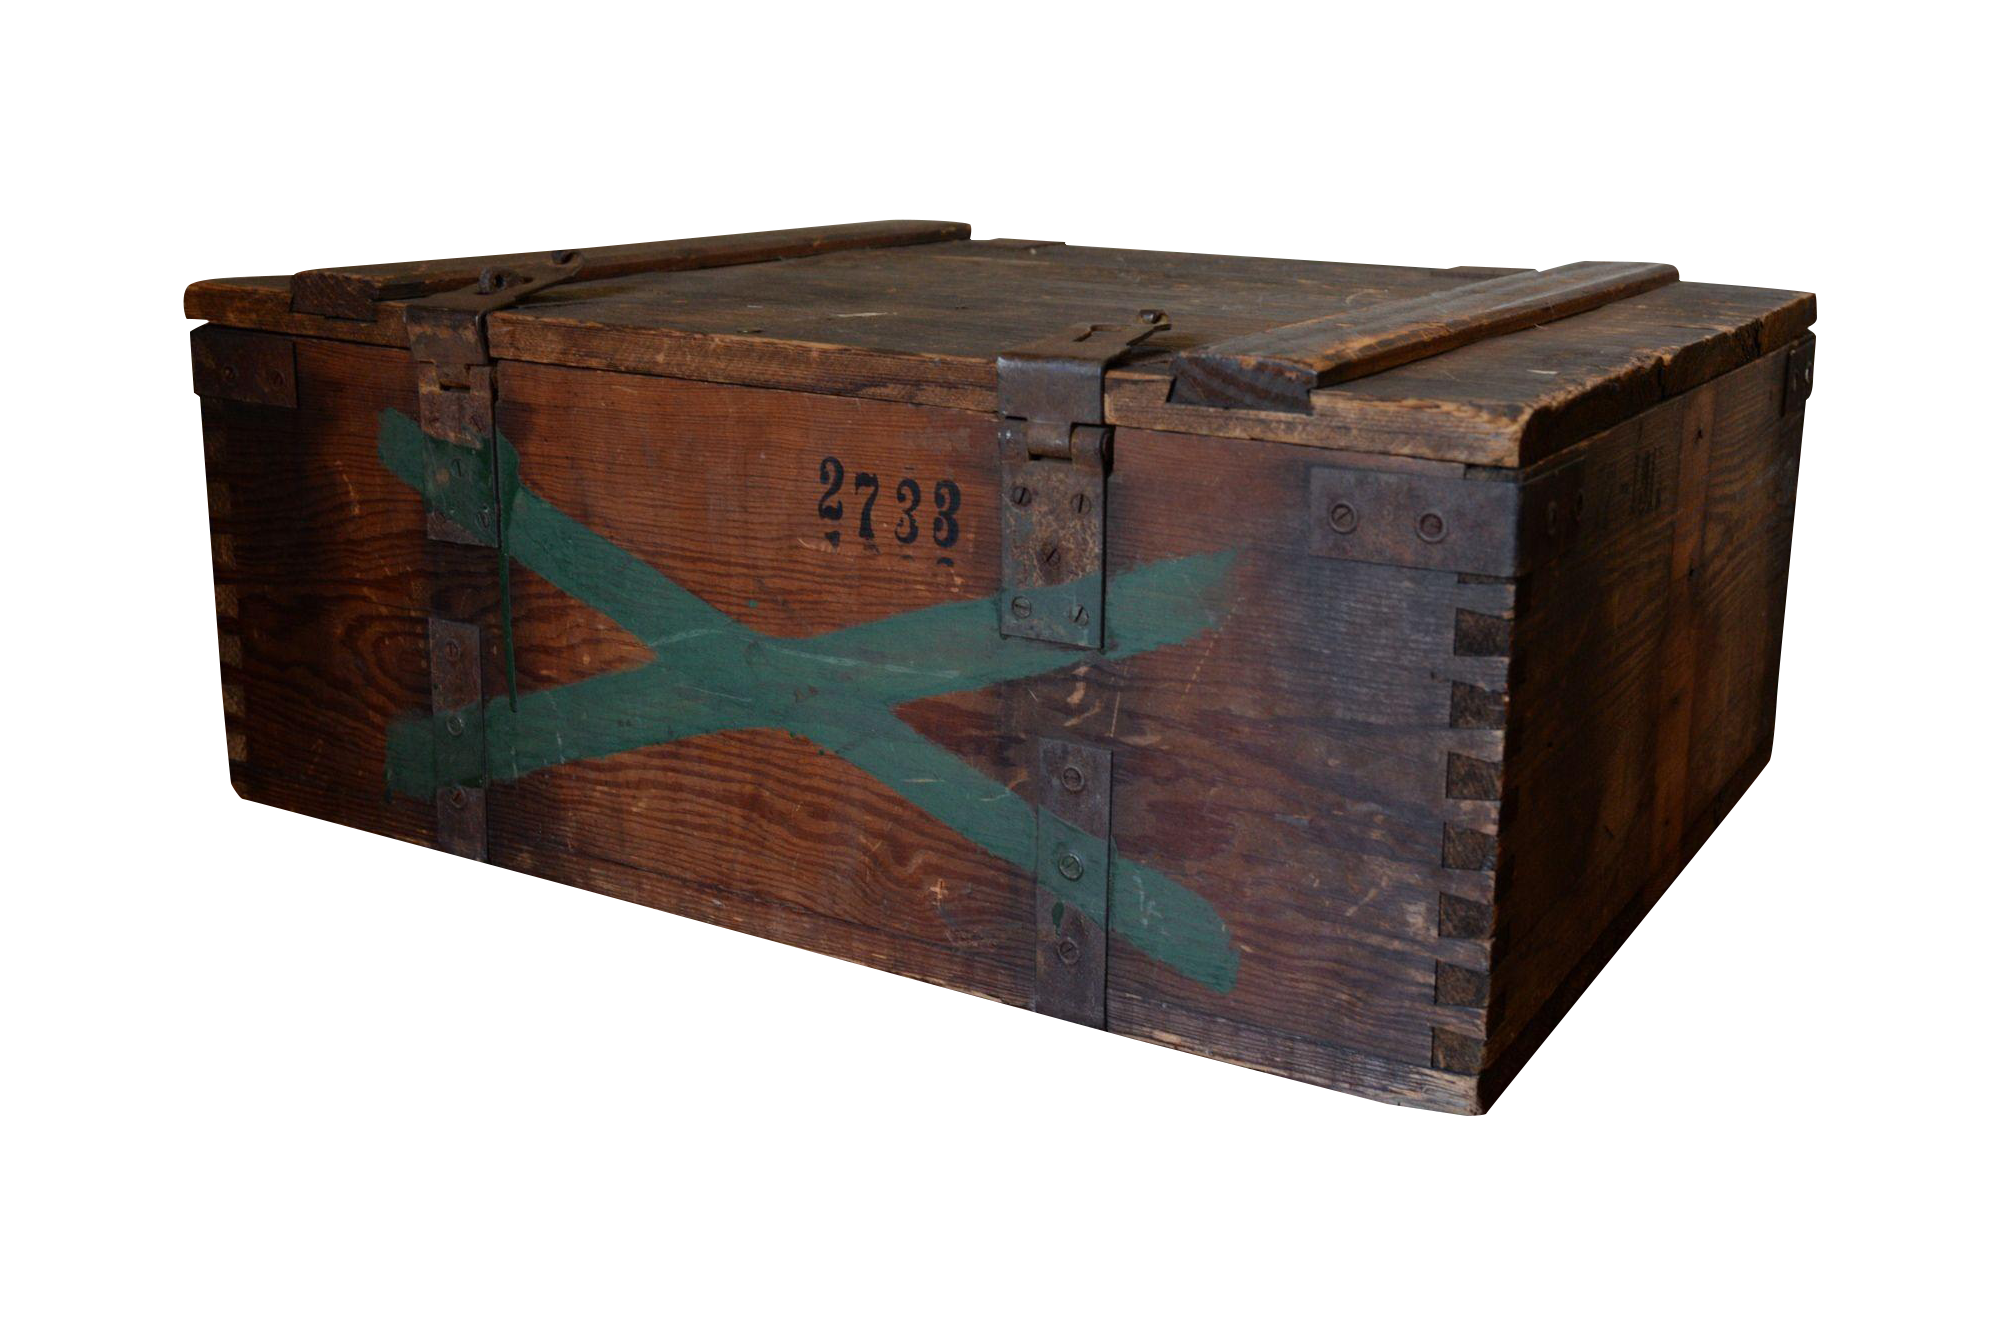 chesterfield furniture history. A Wooden Ammo Box, Worn To Perfection. Pair With Leather Chesterfield Sofa For The Perfect Masculine Lounge Look. Real Piece Of History! Furniture History